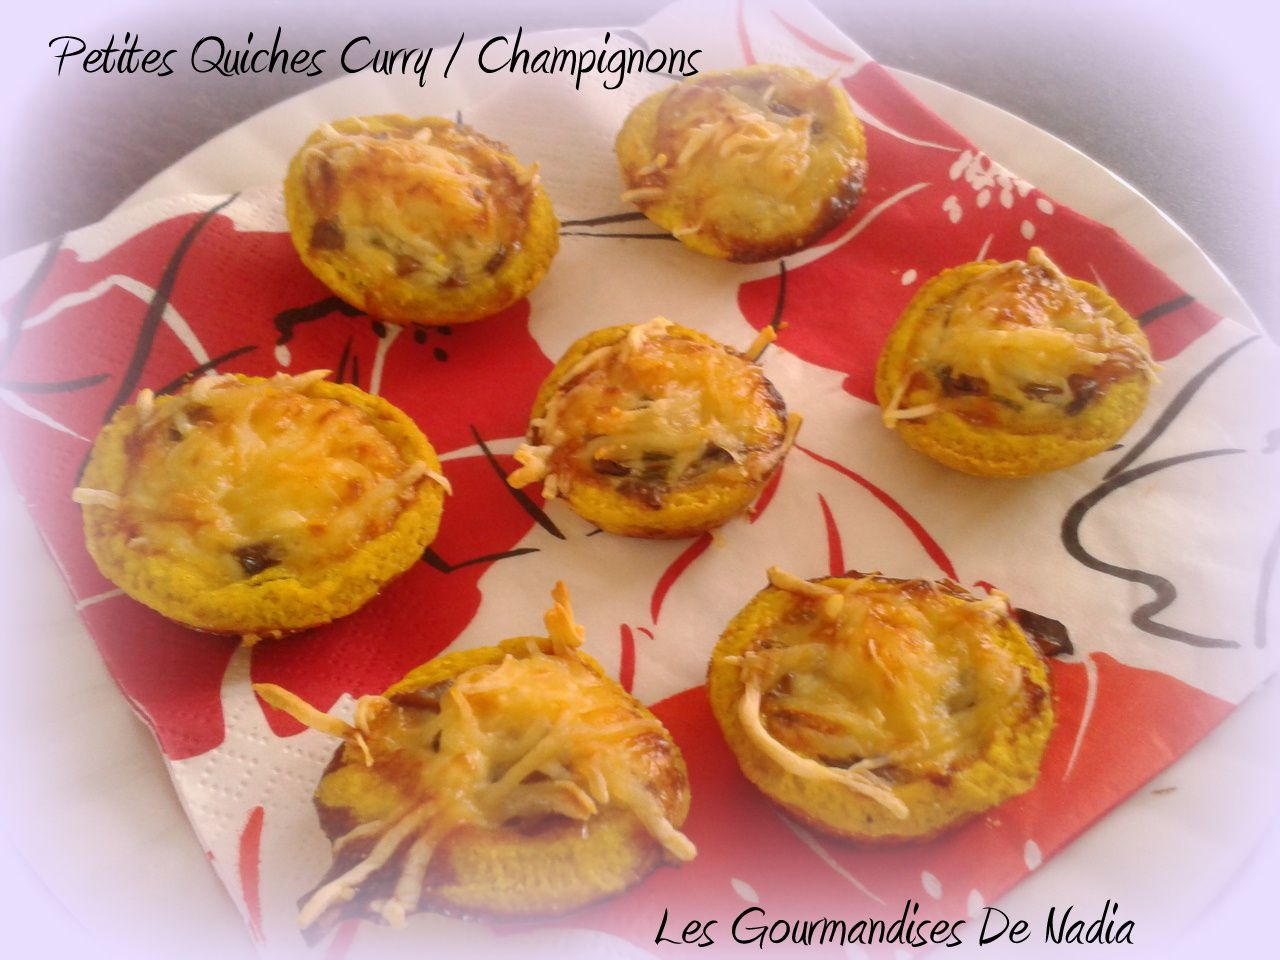 MINI QUICHE CURRY / CHAMPIGNON